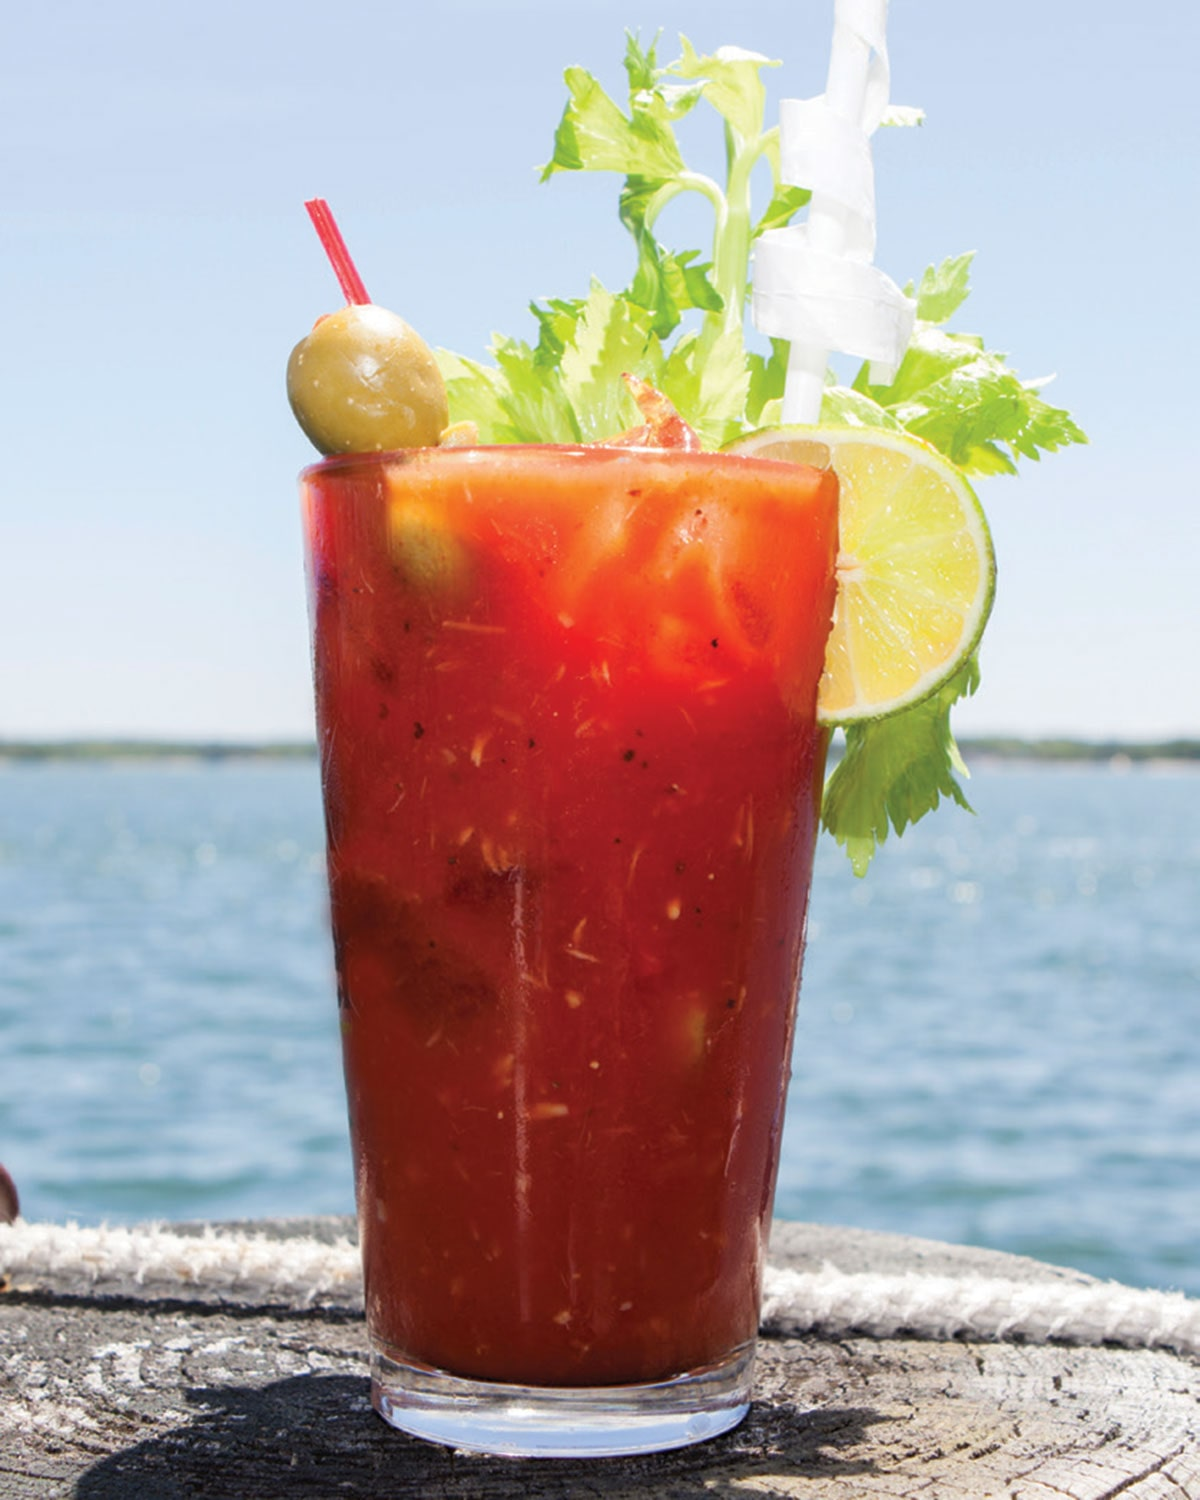 claudios-bloody-mary.jpg